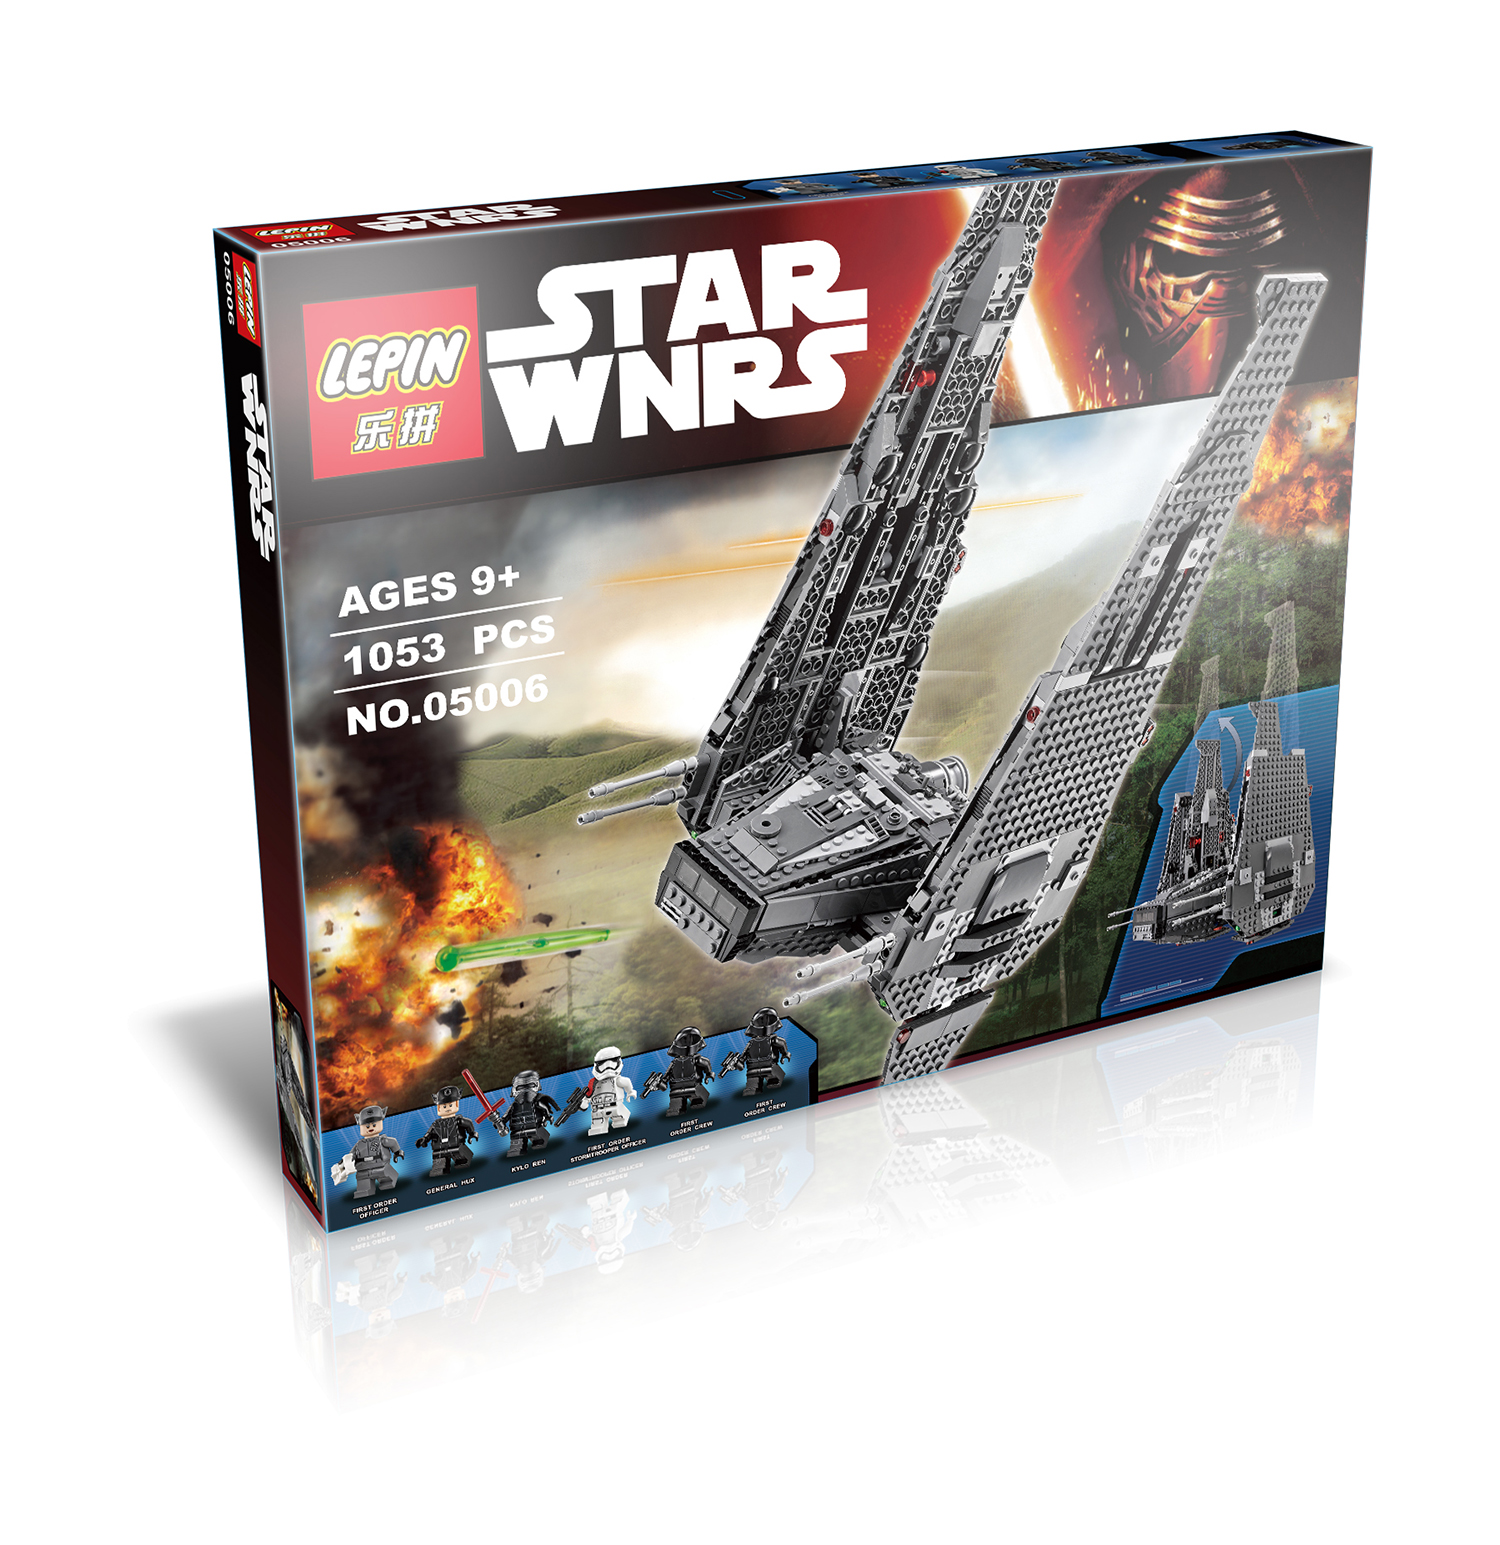 1053+ PCS Building Bricks, LP 05006 Building Blocks Star Wars Kylo Ren's Command Shuttle.